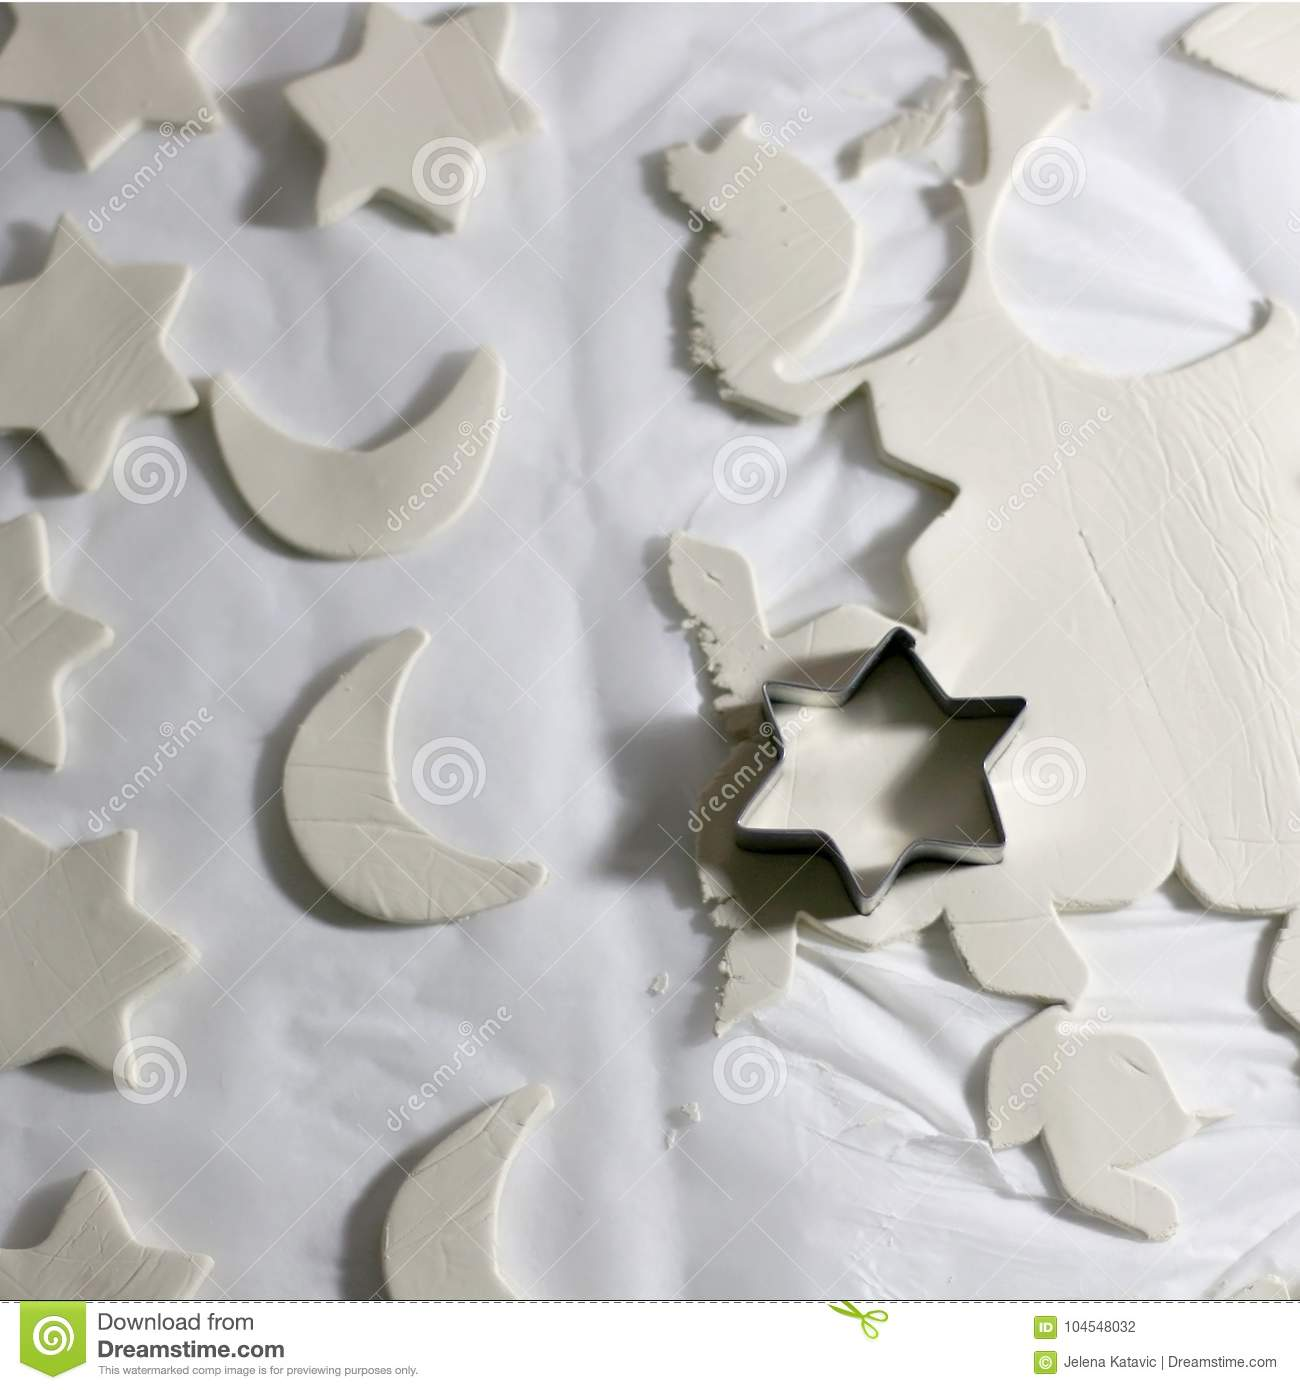 Making homemade Christmas decorations with white clay and cookie cutters. Selective focus.